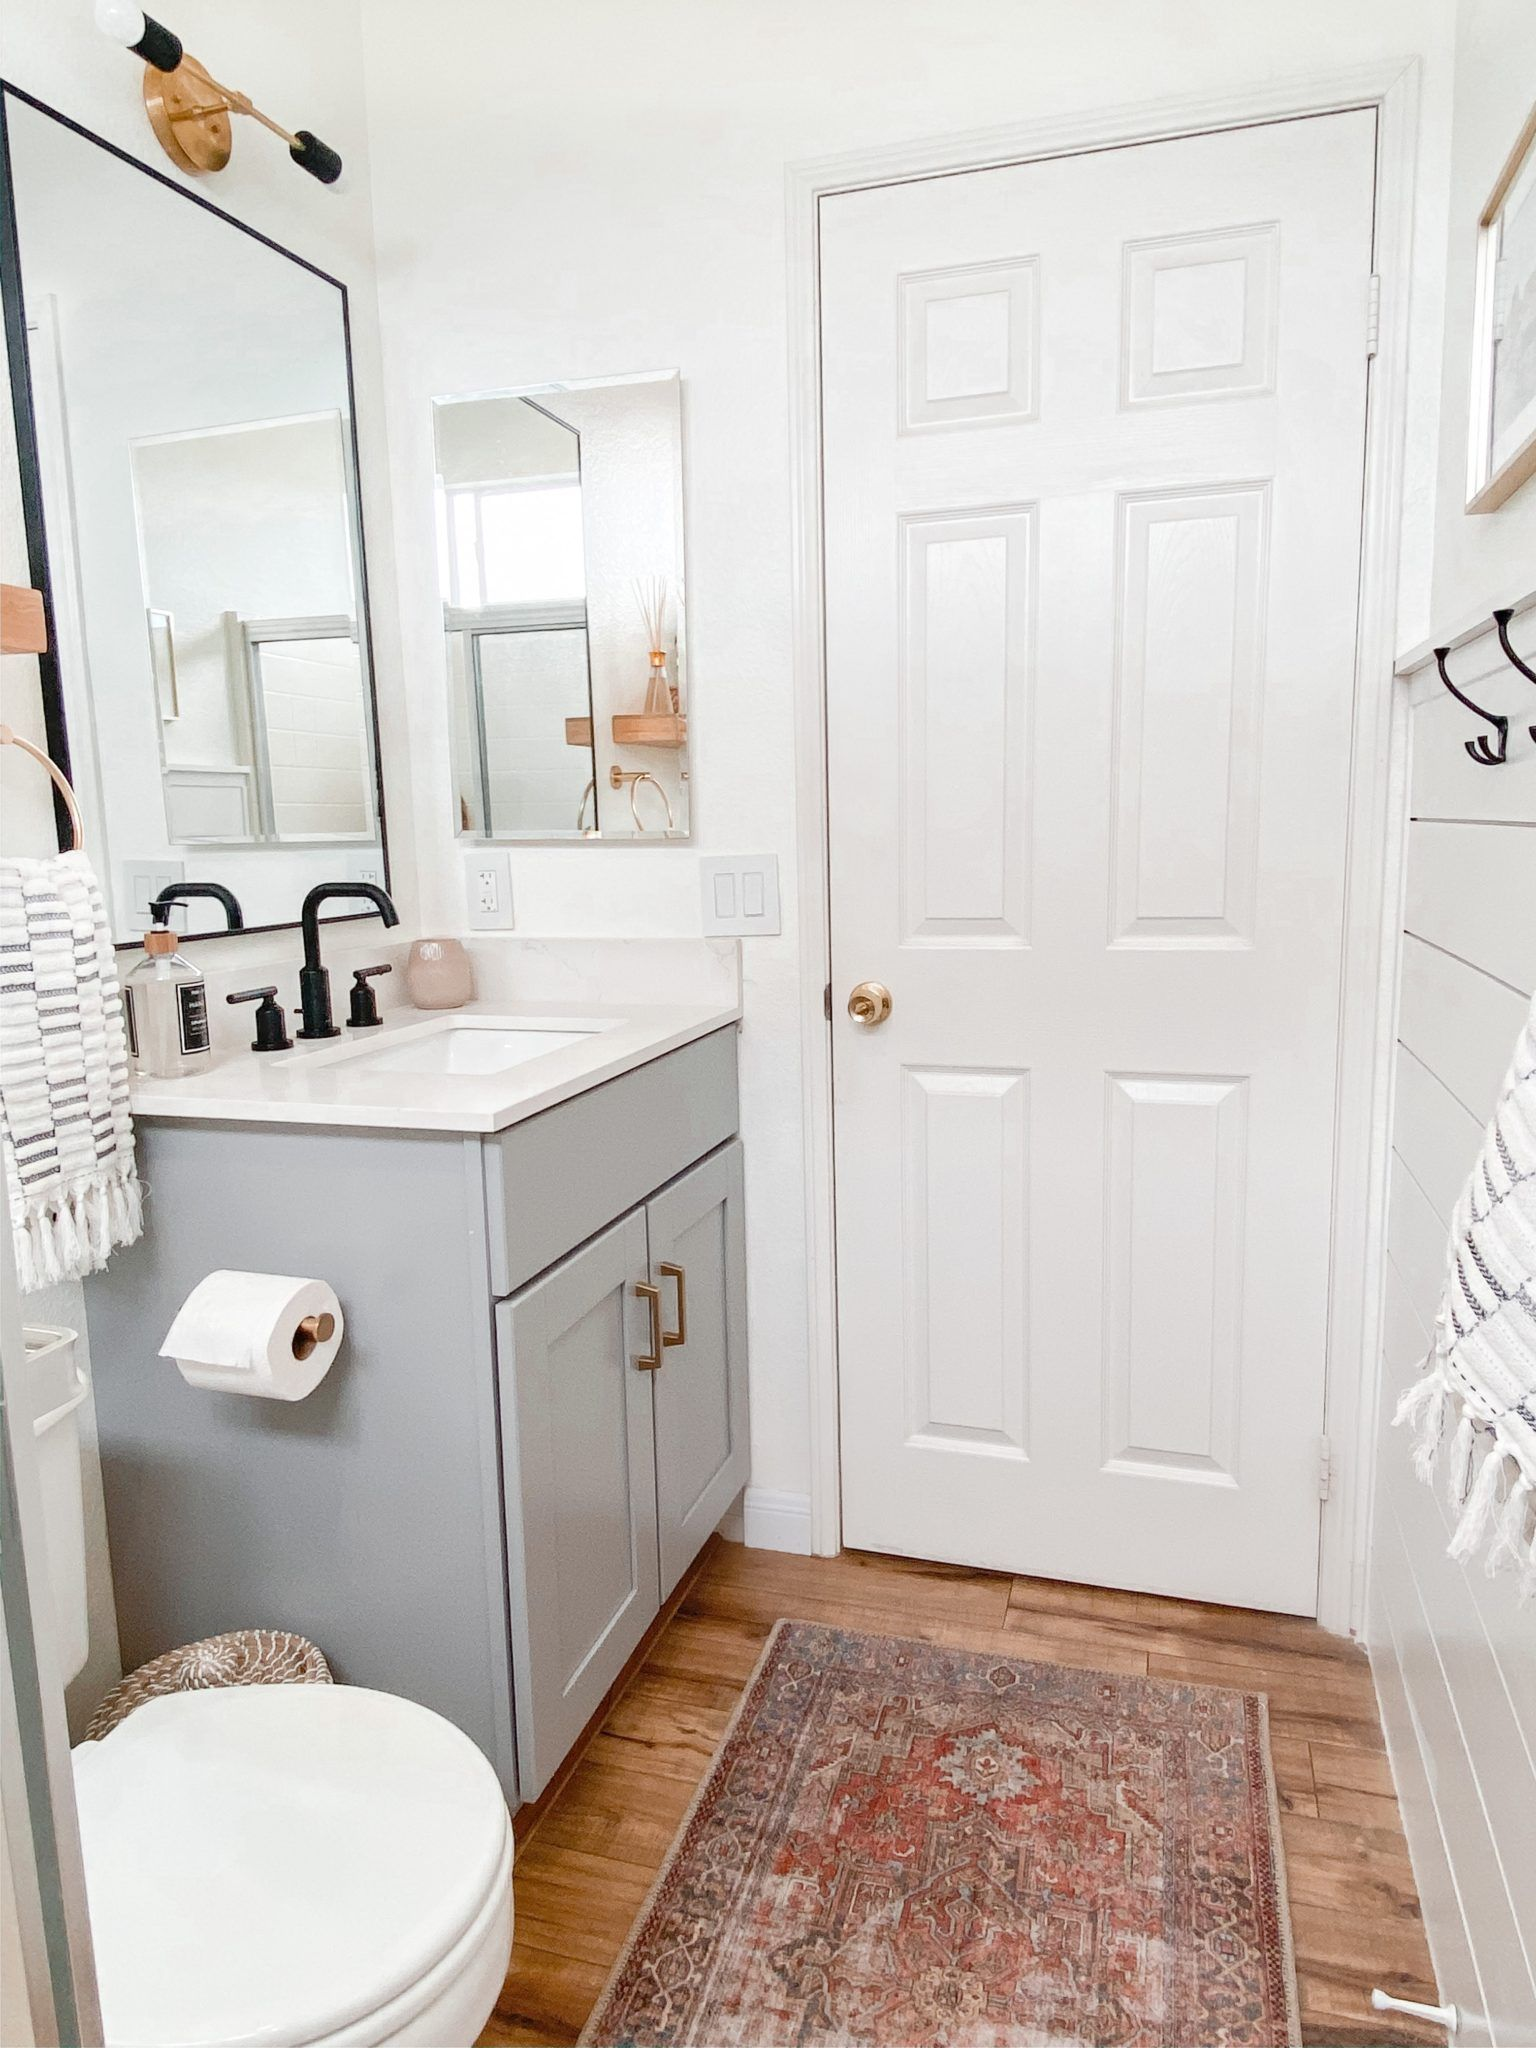 small bathroom remodel ideas befor and after domestic on bathroom renovation ideas 2020 id=78758